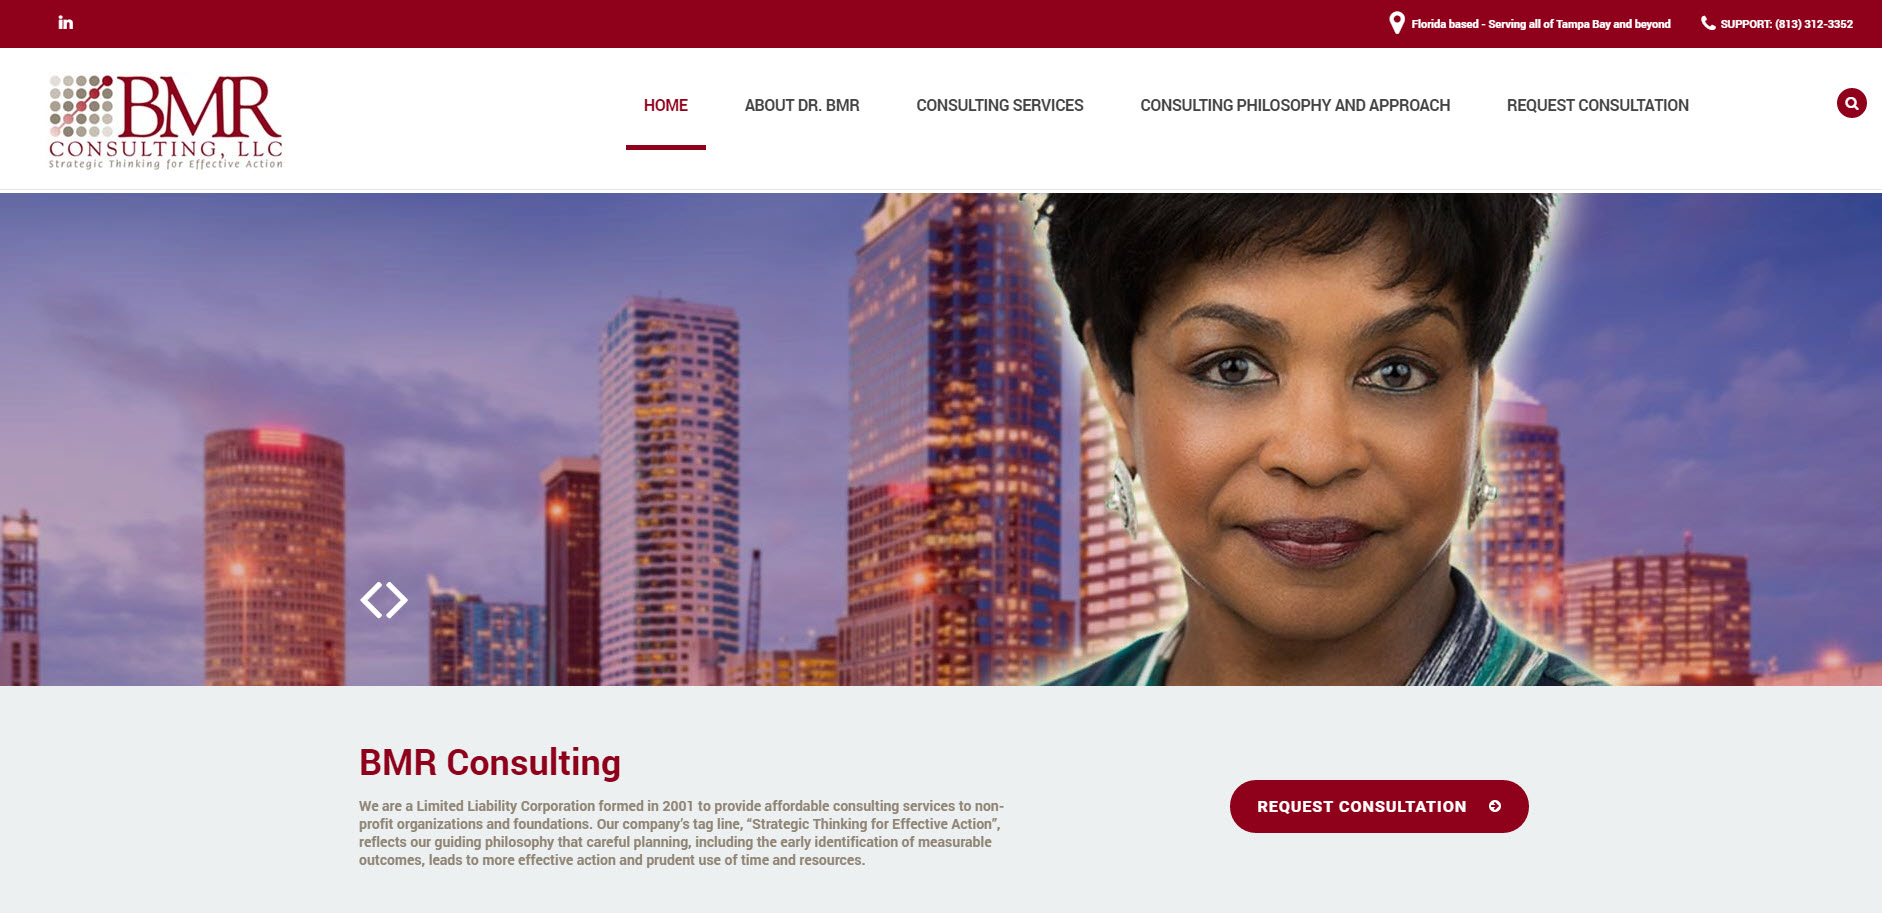 BMR Consulting - A BrixTec Web Solution